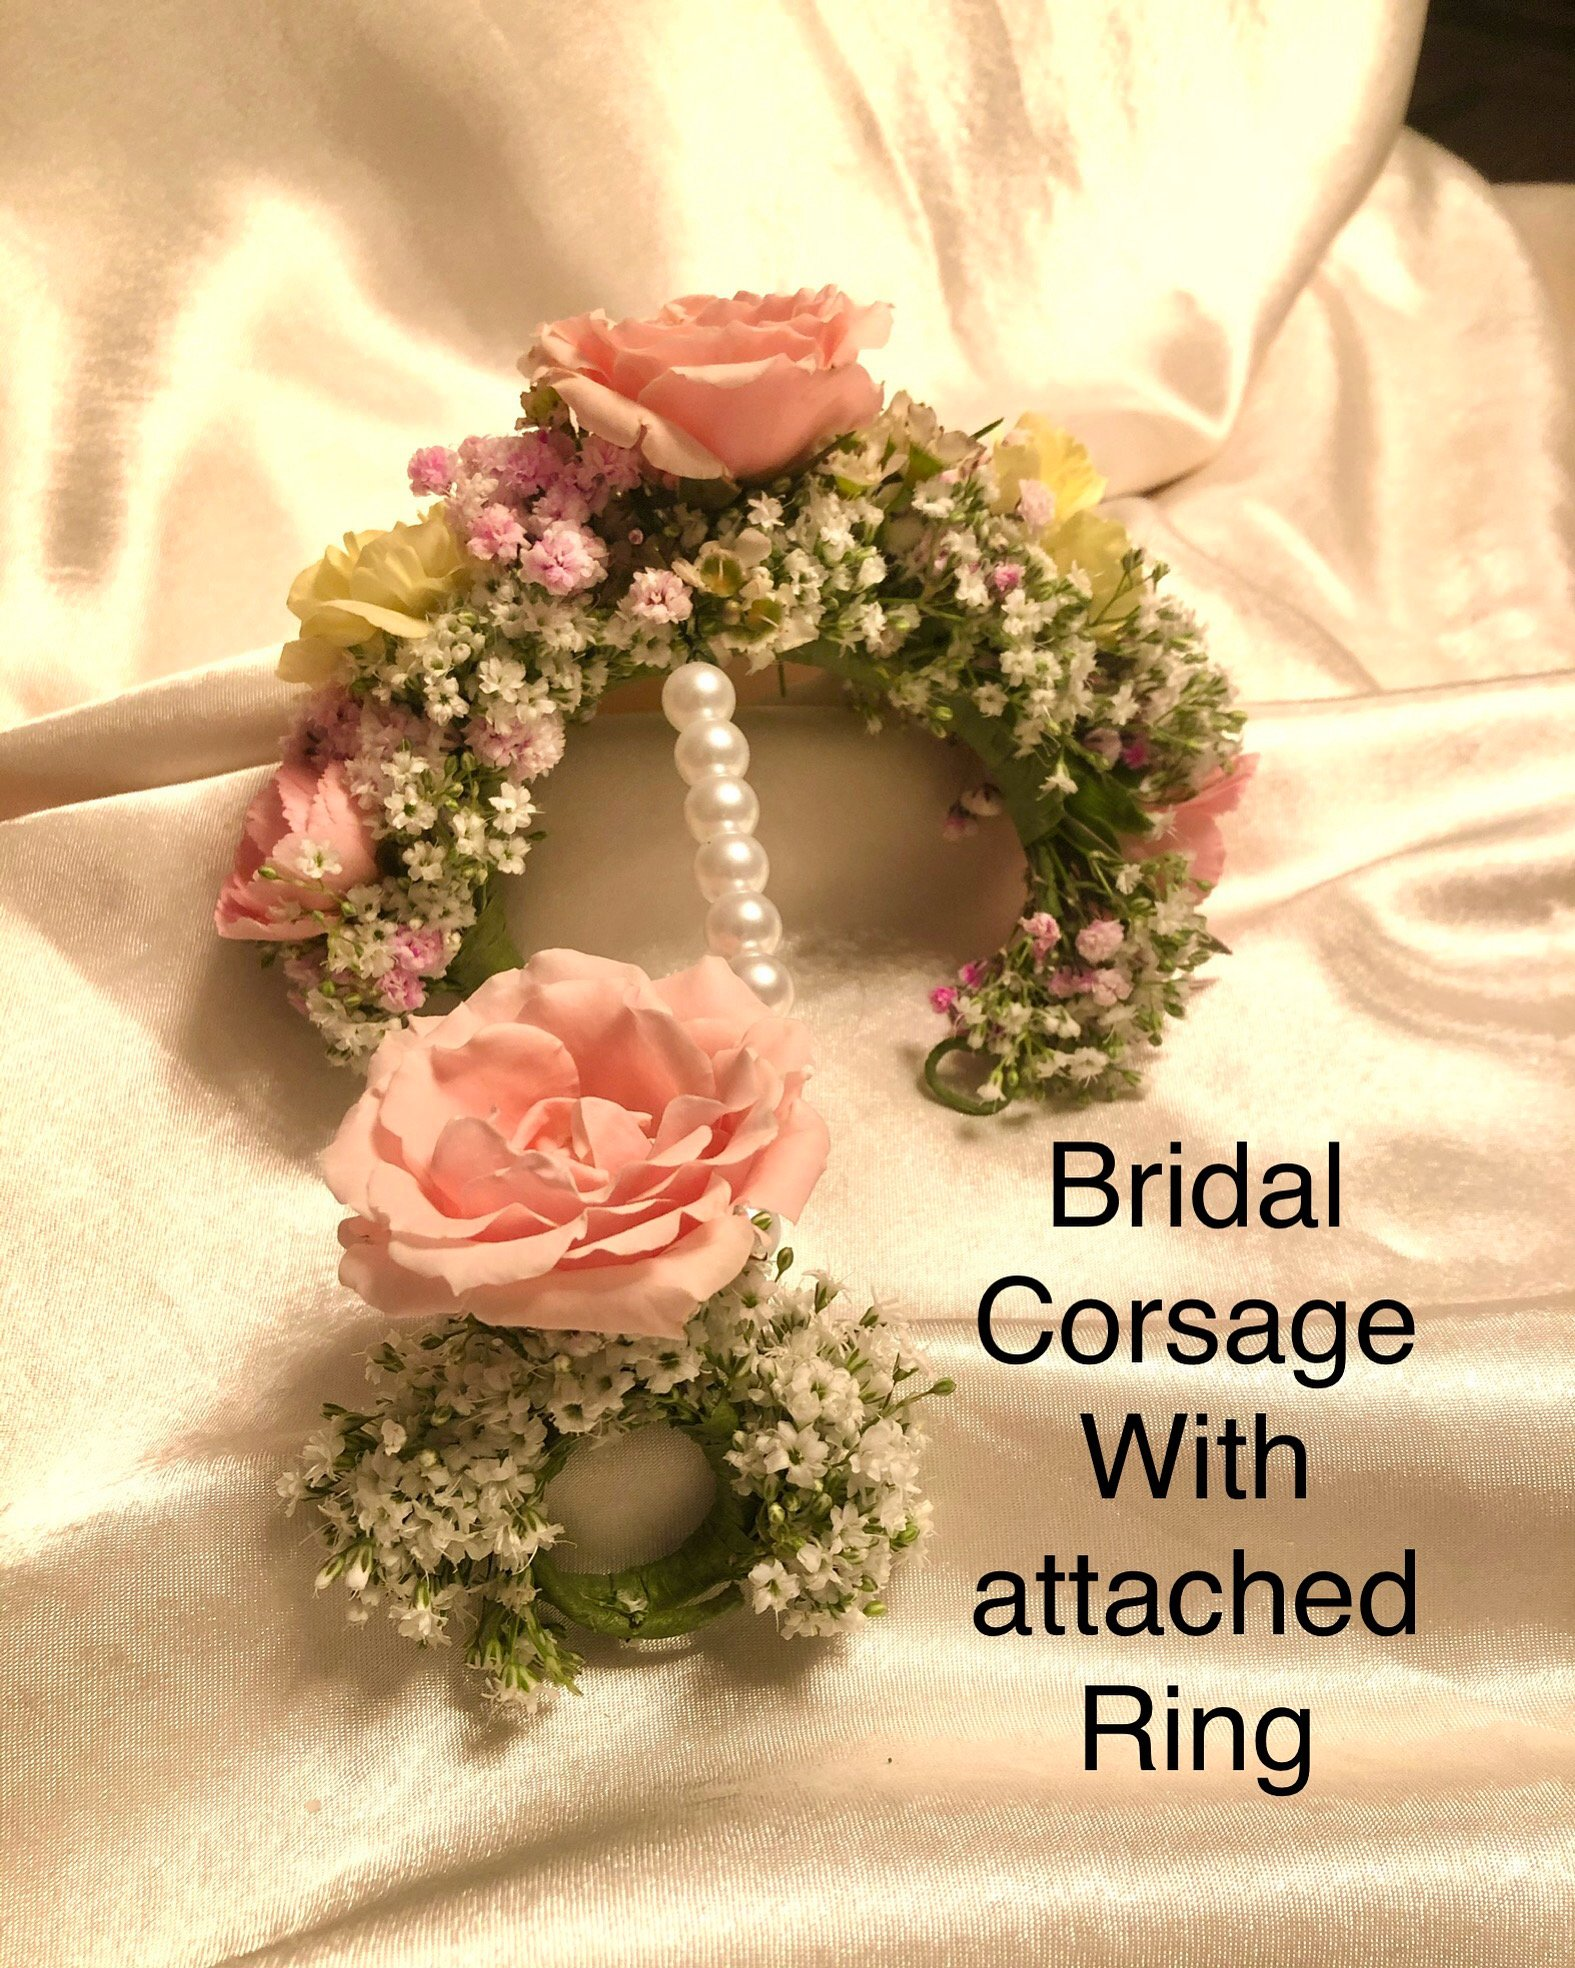 Bridal Corsage small Roses with attached Ring